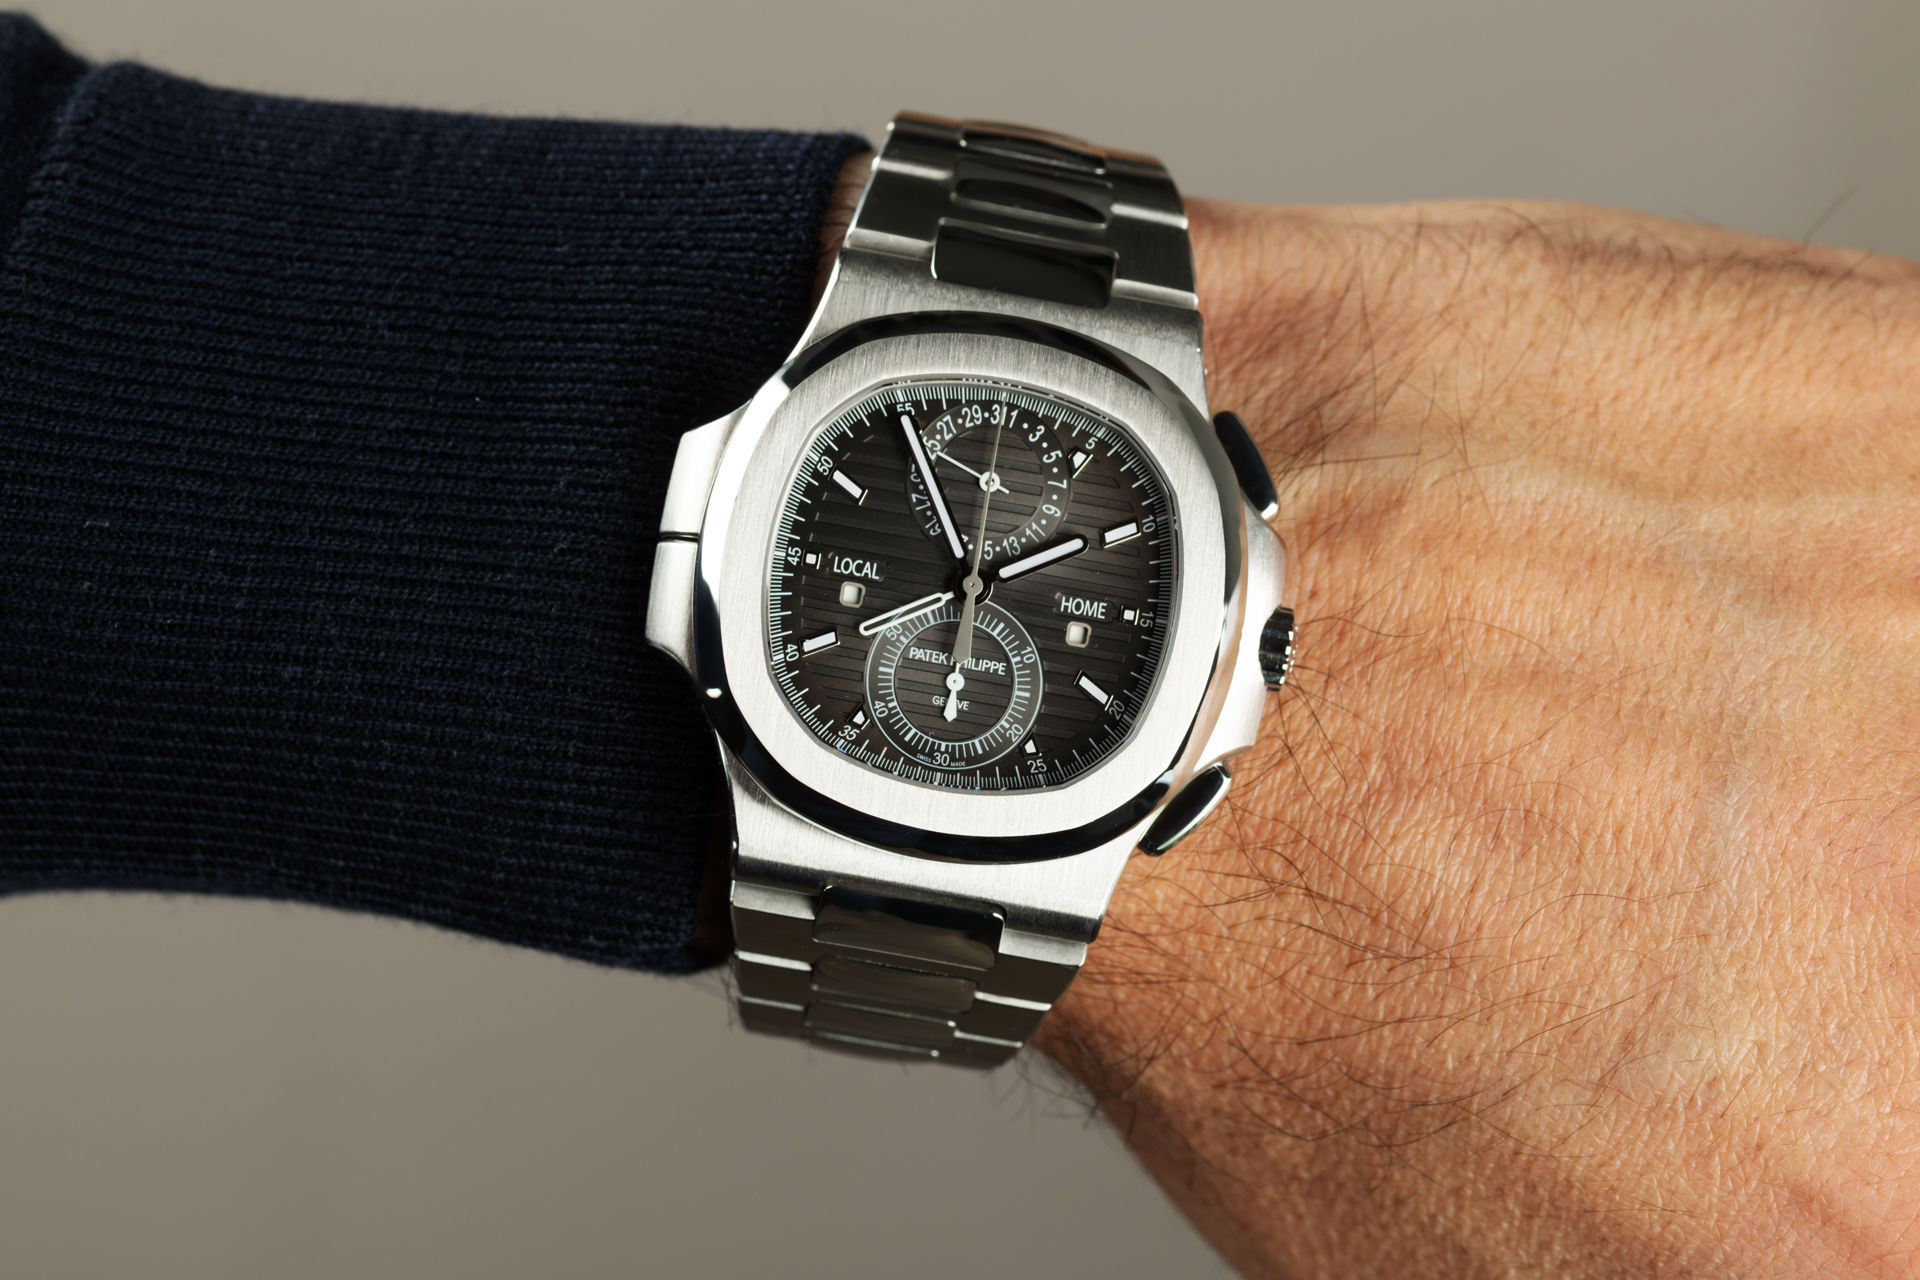 Travel Time Complete Set | ref 5990/1A-001 | Patek Philippe Nautilus